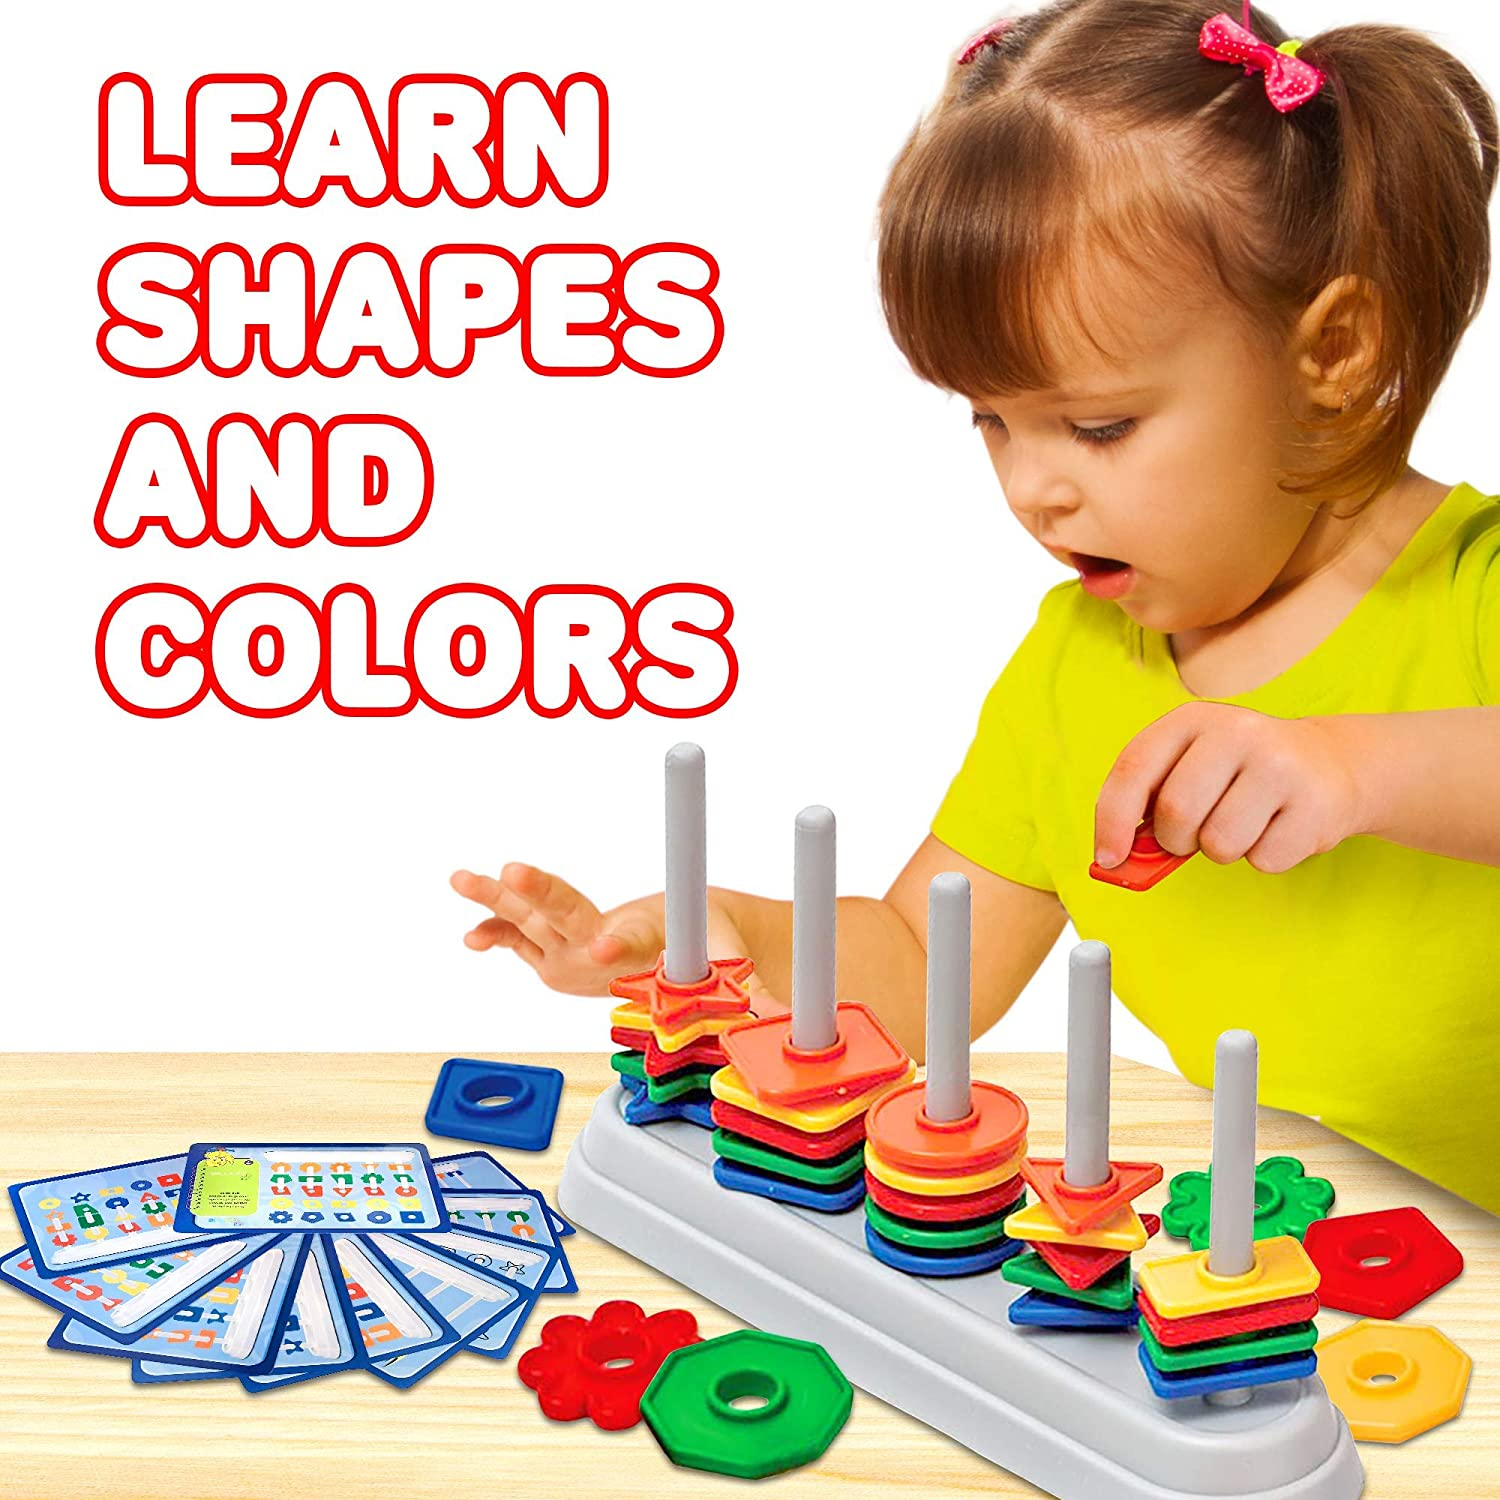 Toddlers and Instructions Educational Learning Toy for Boys 50 Shape Pieces Gamie Color and Shape Matching Game for Kids 10 Work Cards for 3-6 Year Olds Includes Sorting Bar Girls